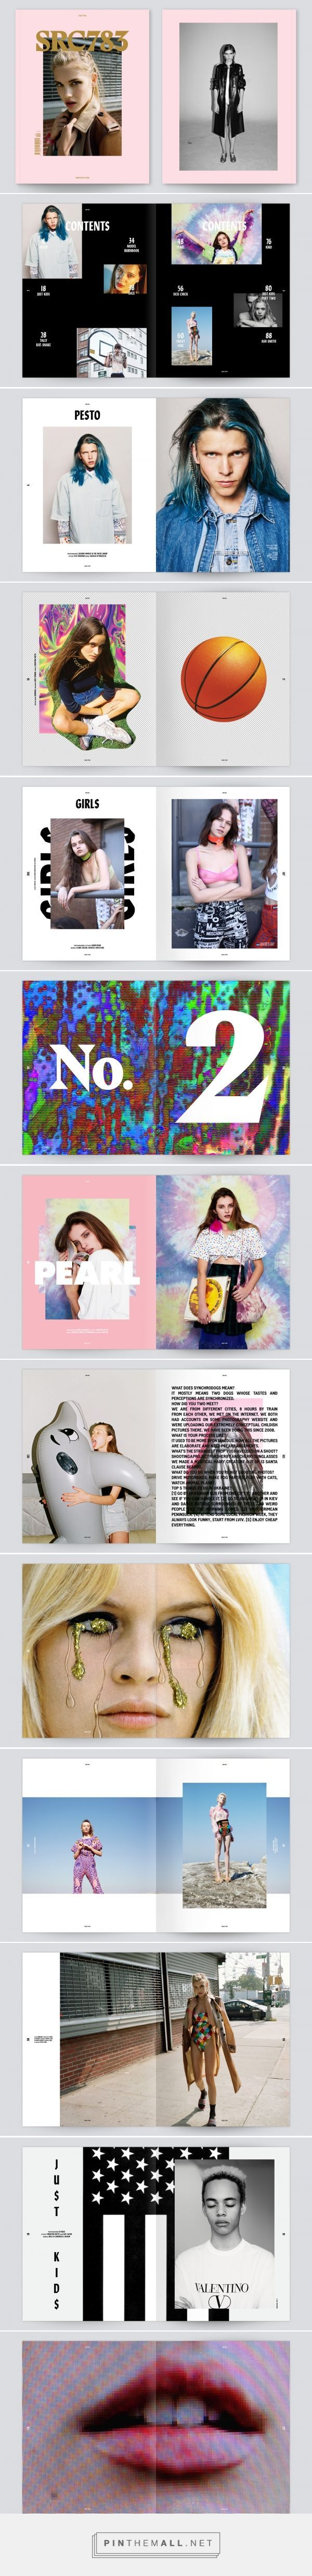 SRC783 Issue Two - Magazine Publishing & Website - The Drop